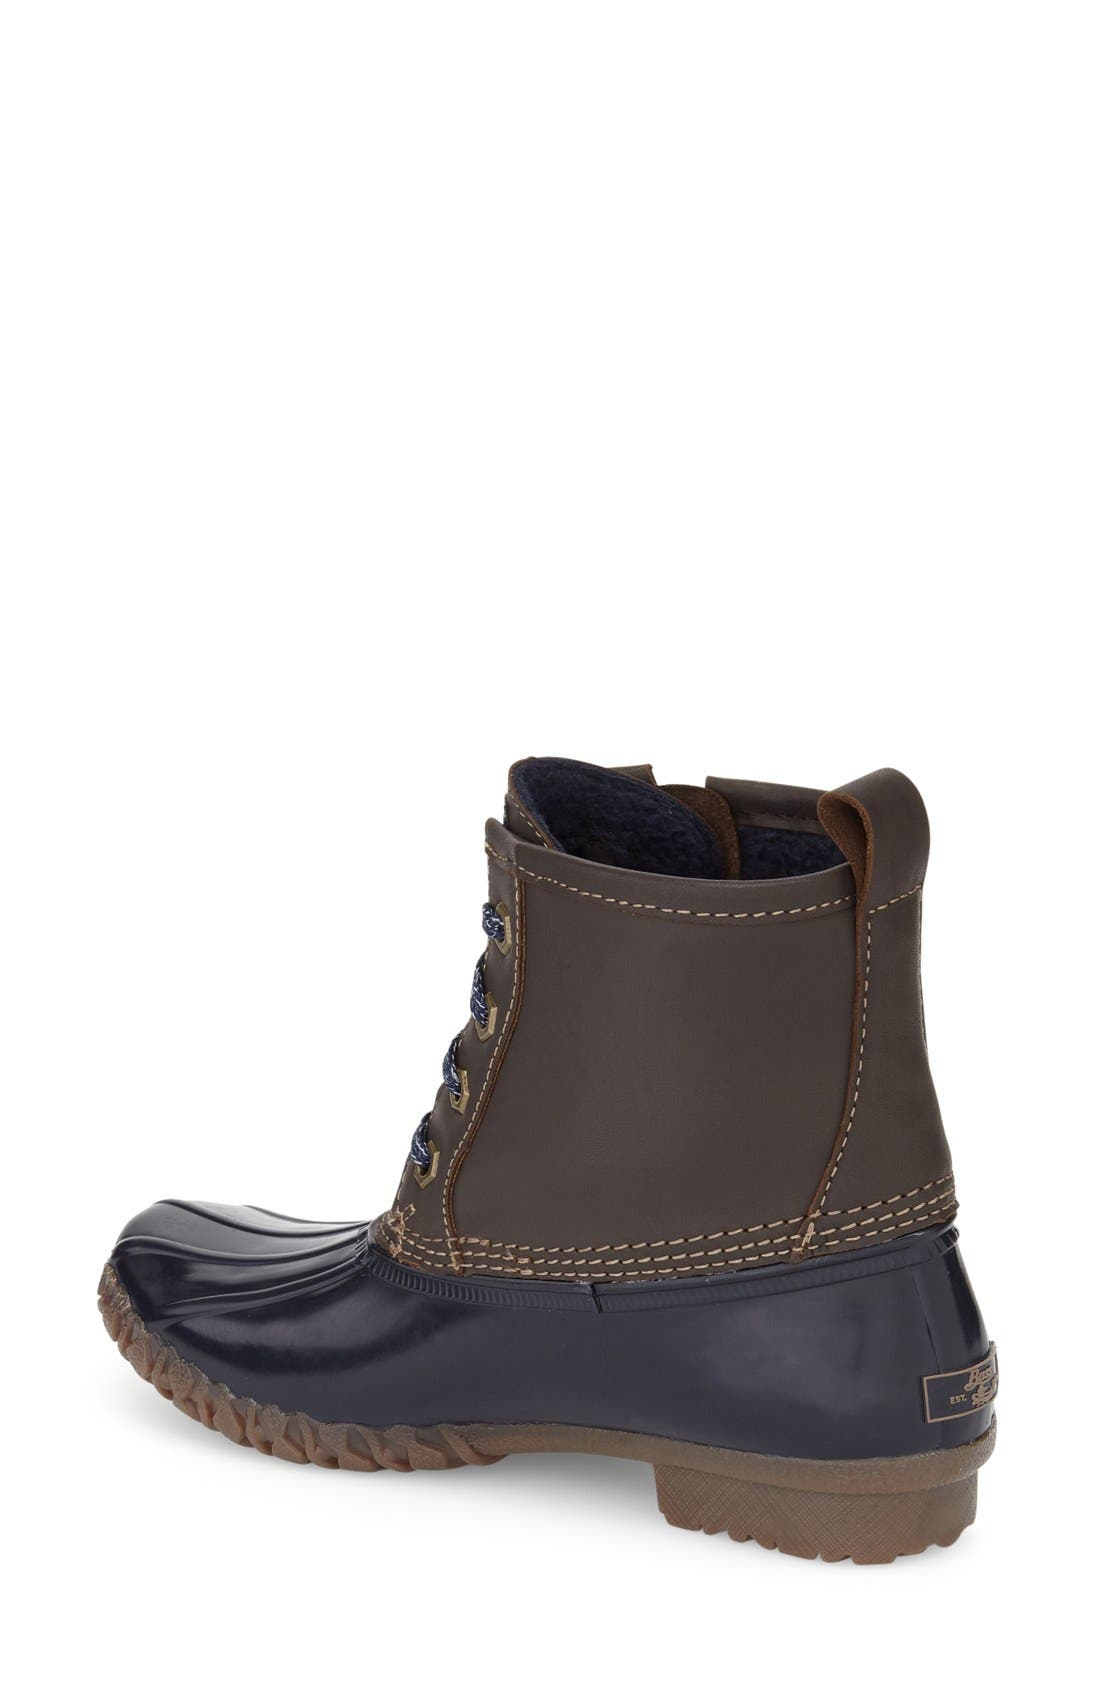 Danielle Waterproof Duck Boot,                             Alternate thumbnail 2, color,                             Chocolate/ Navy Leather